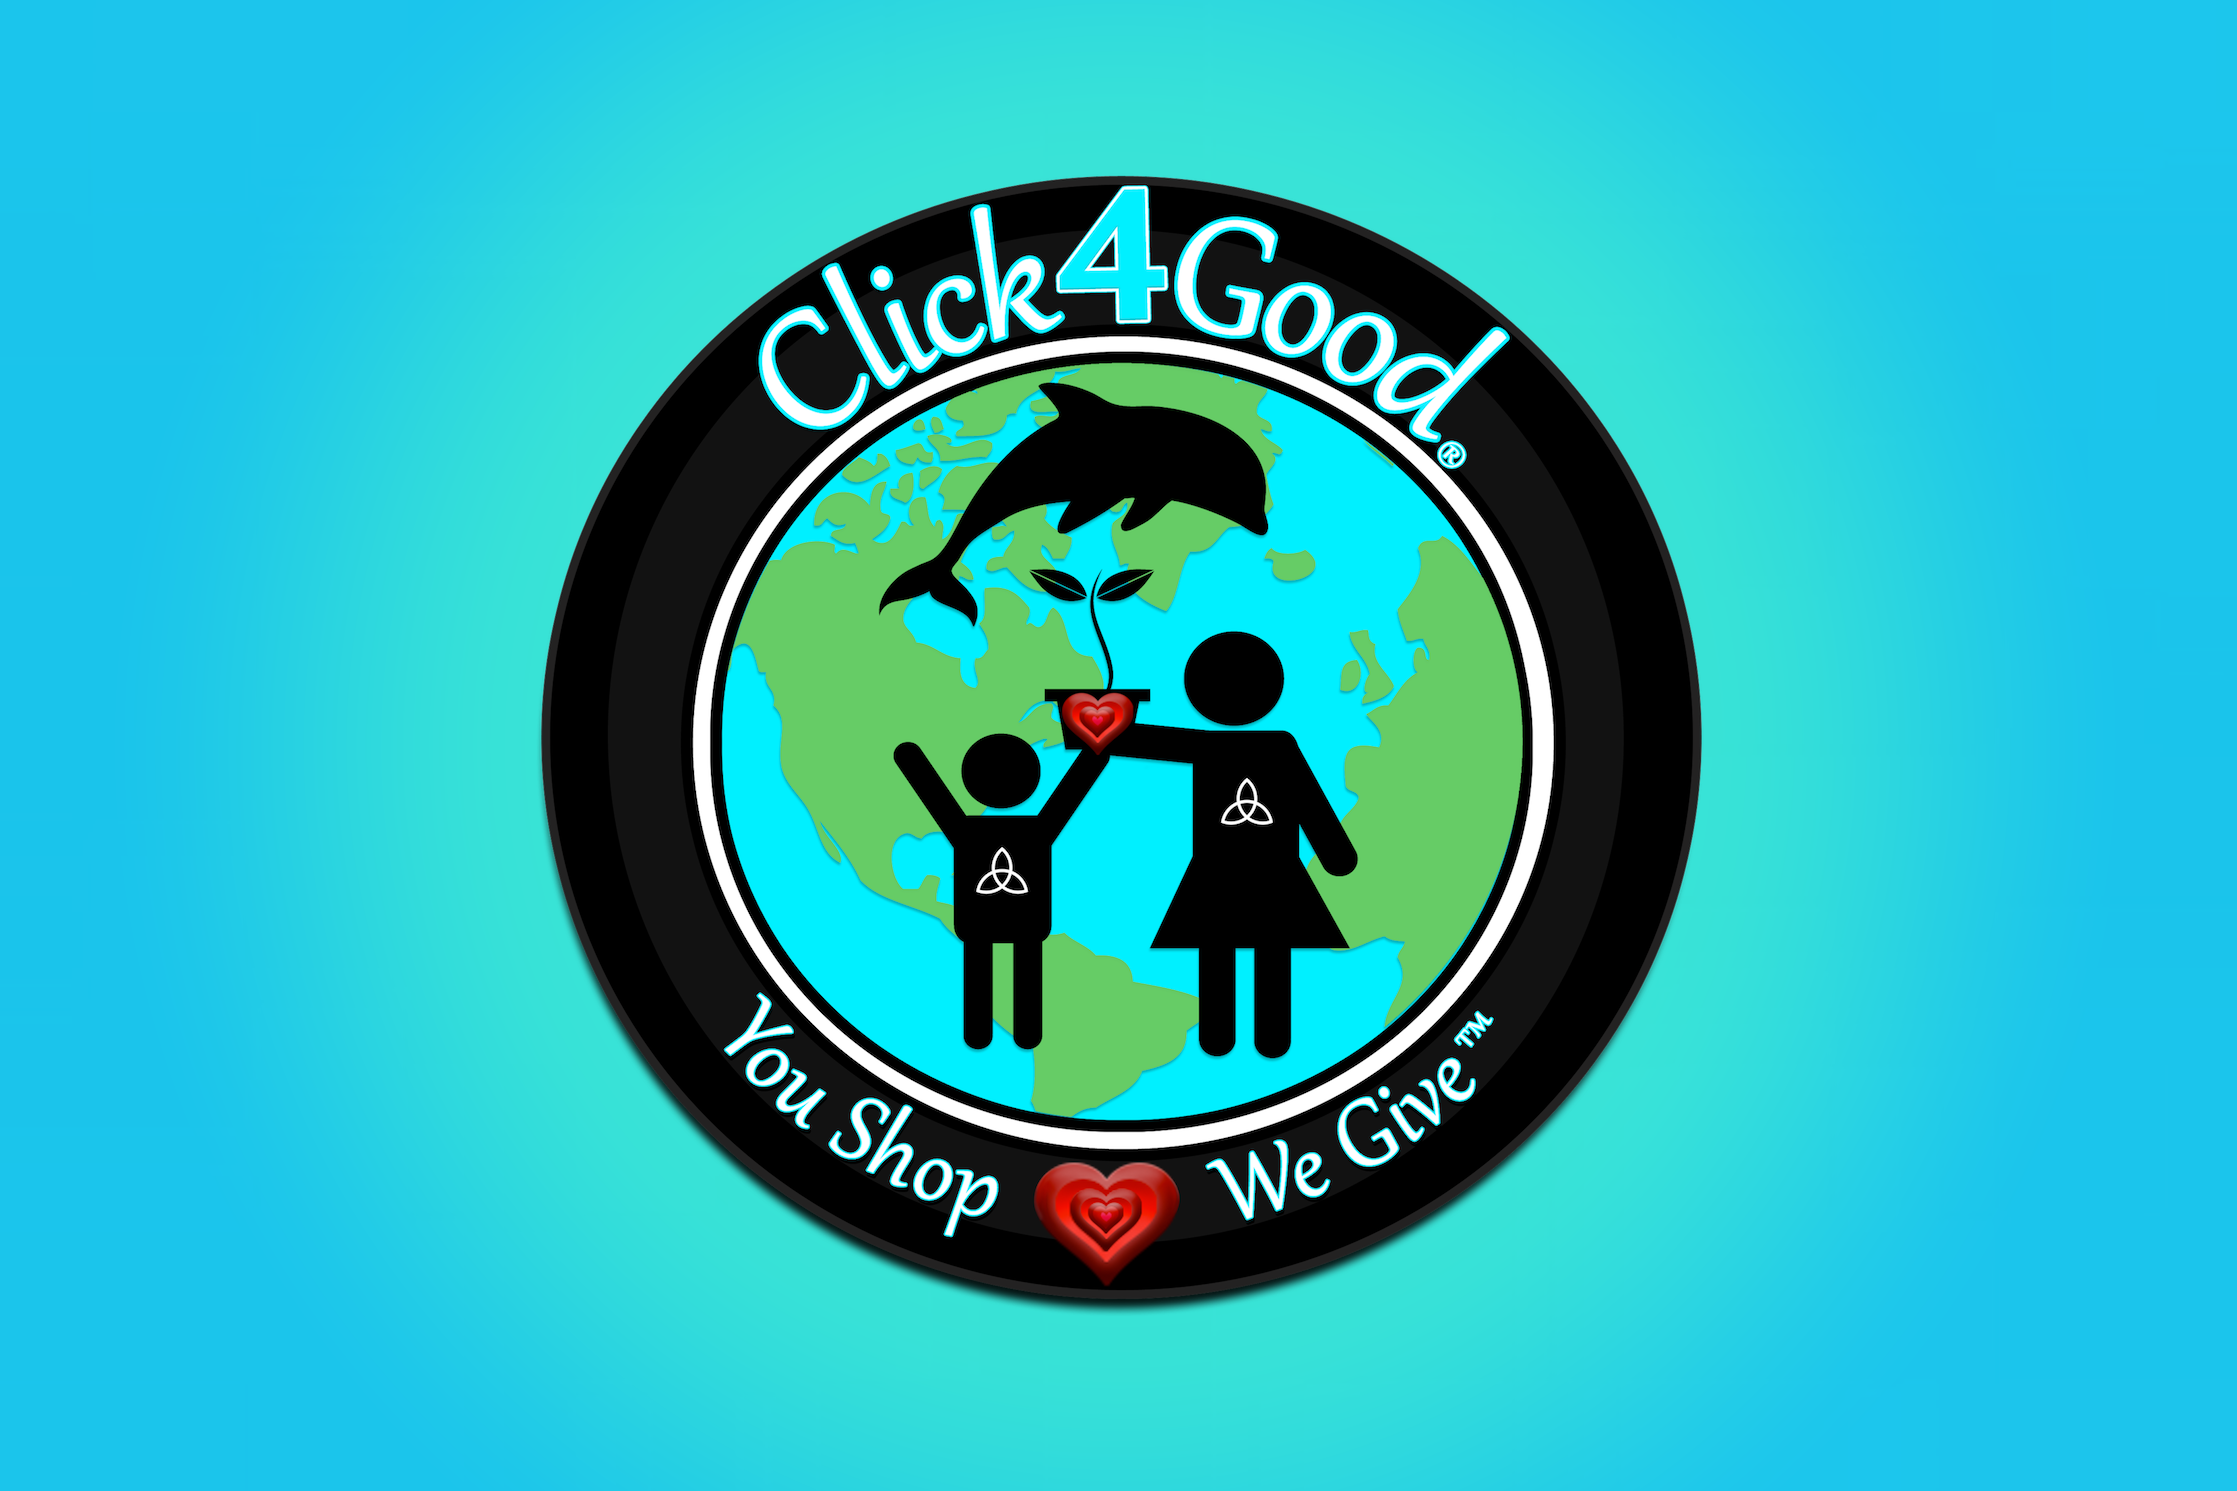 Sharing is Good  - Spread the word, spread the wealth, spread the ♡The more people shop, the more we can give... Share #click4good #live4good #live2give with friends & Follow: @click4good on social media!